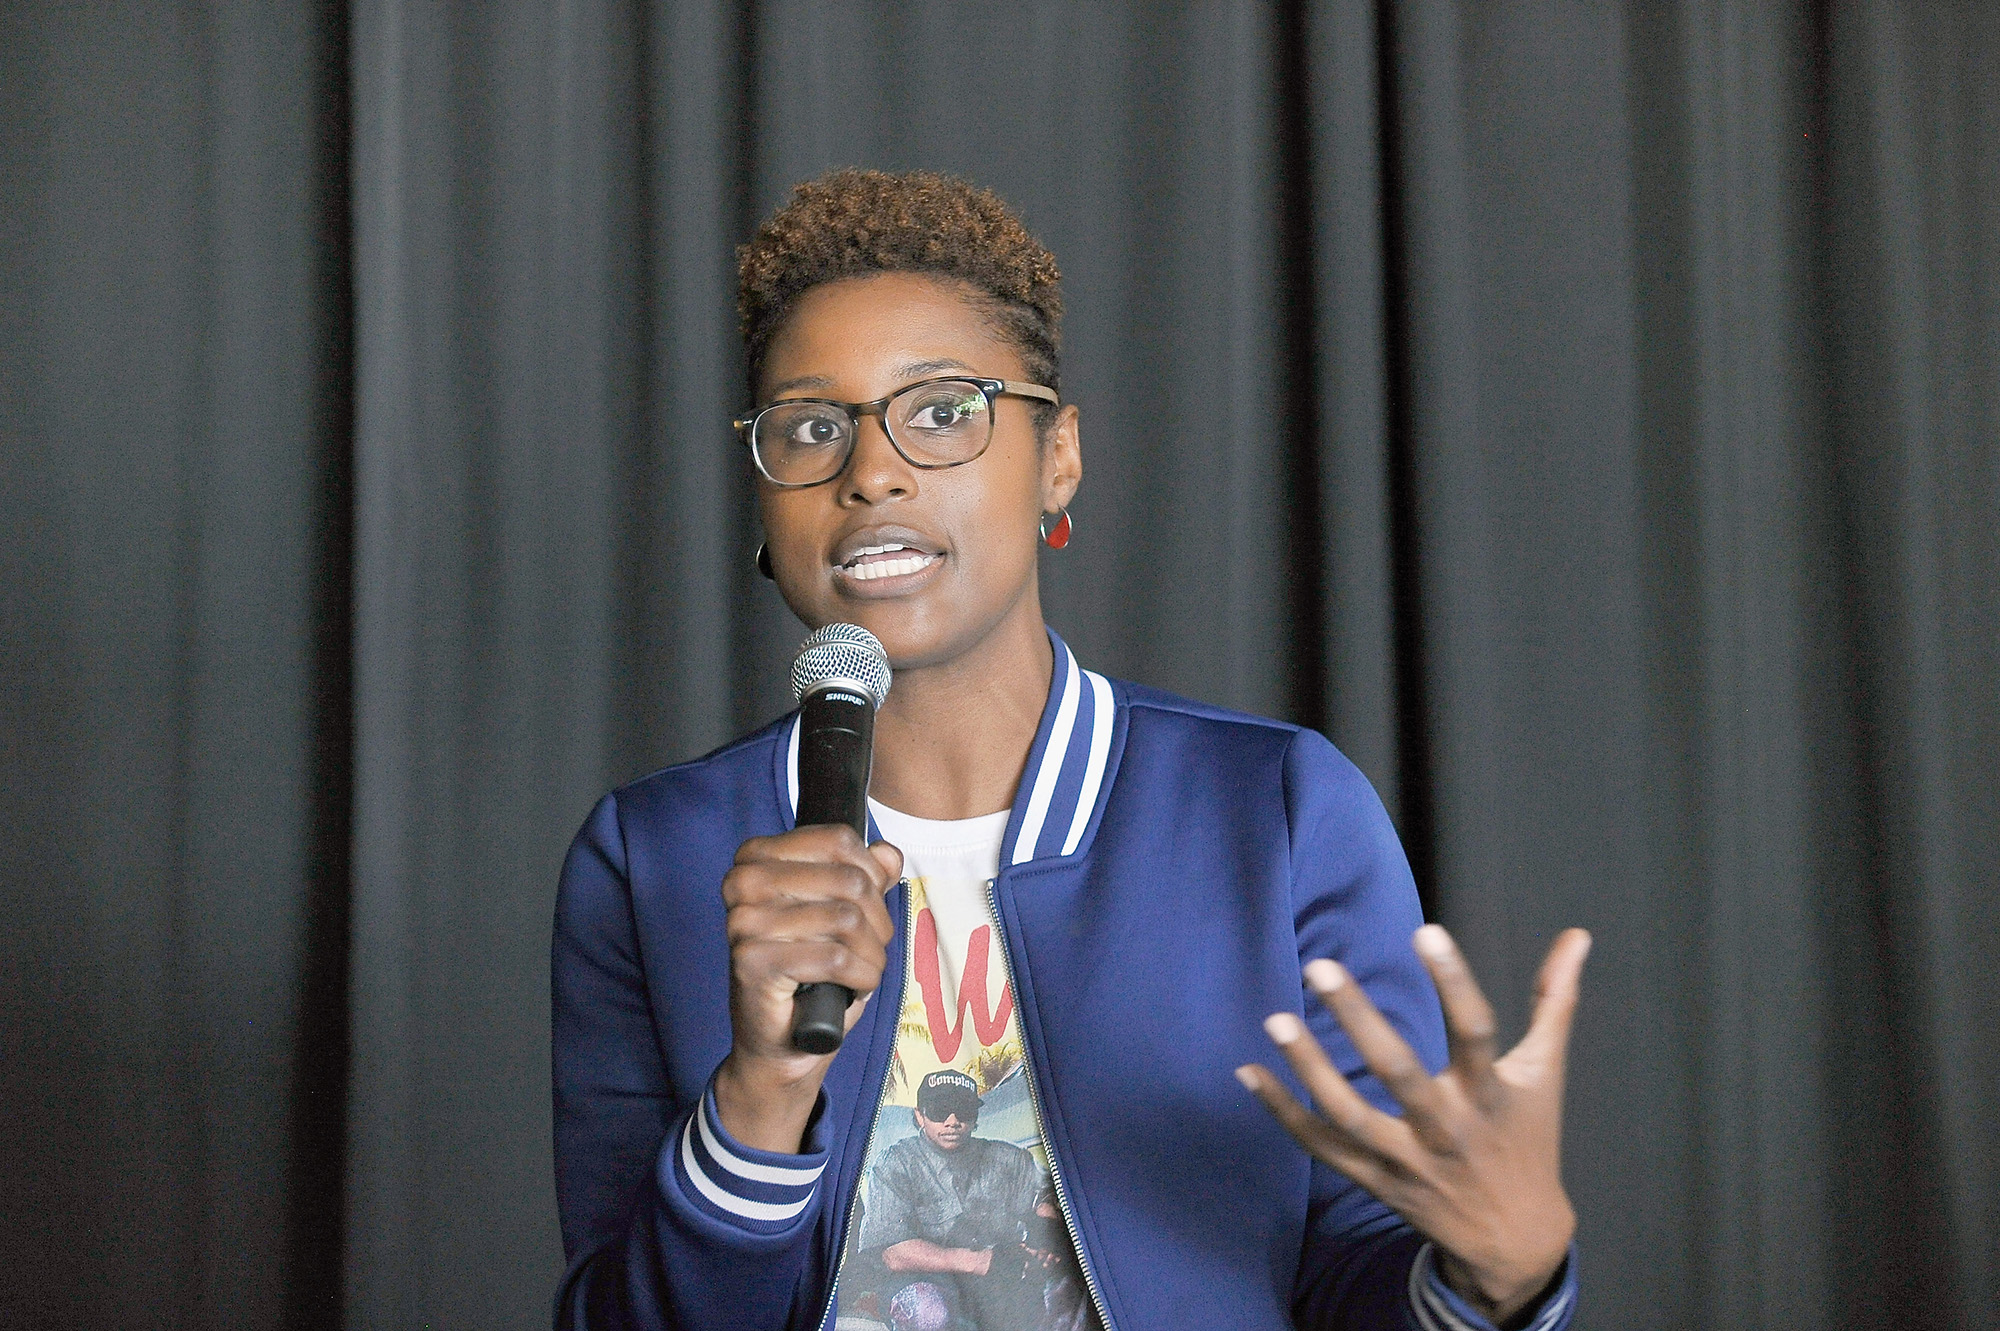 Issa Rae speaks onstage at the Diversity Speaks Panel during the 2016 Los Angeles Film Festival on June 4, 2016 in Culver City, California.  (Photo by Jerod Harris/WireImage)